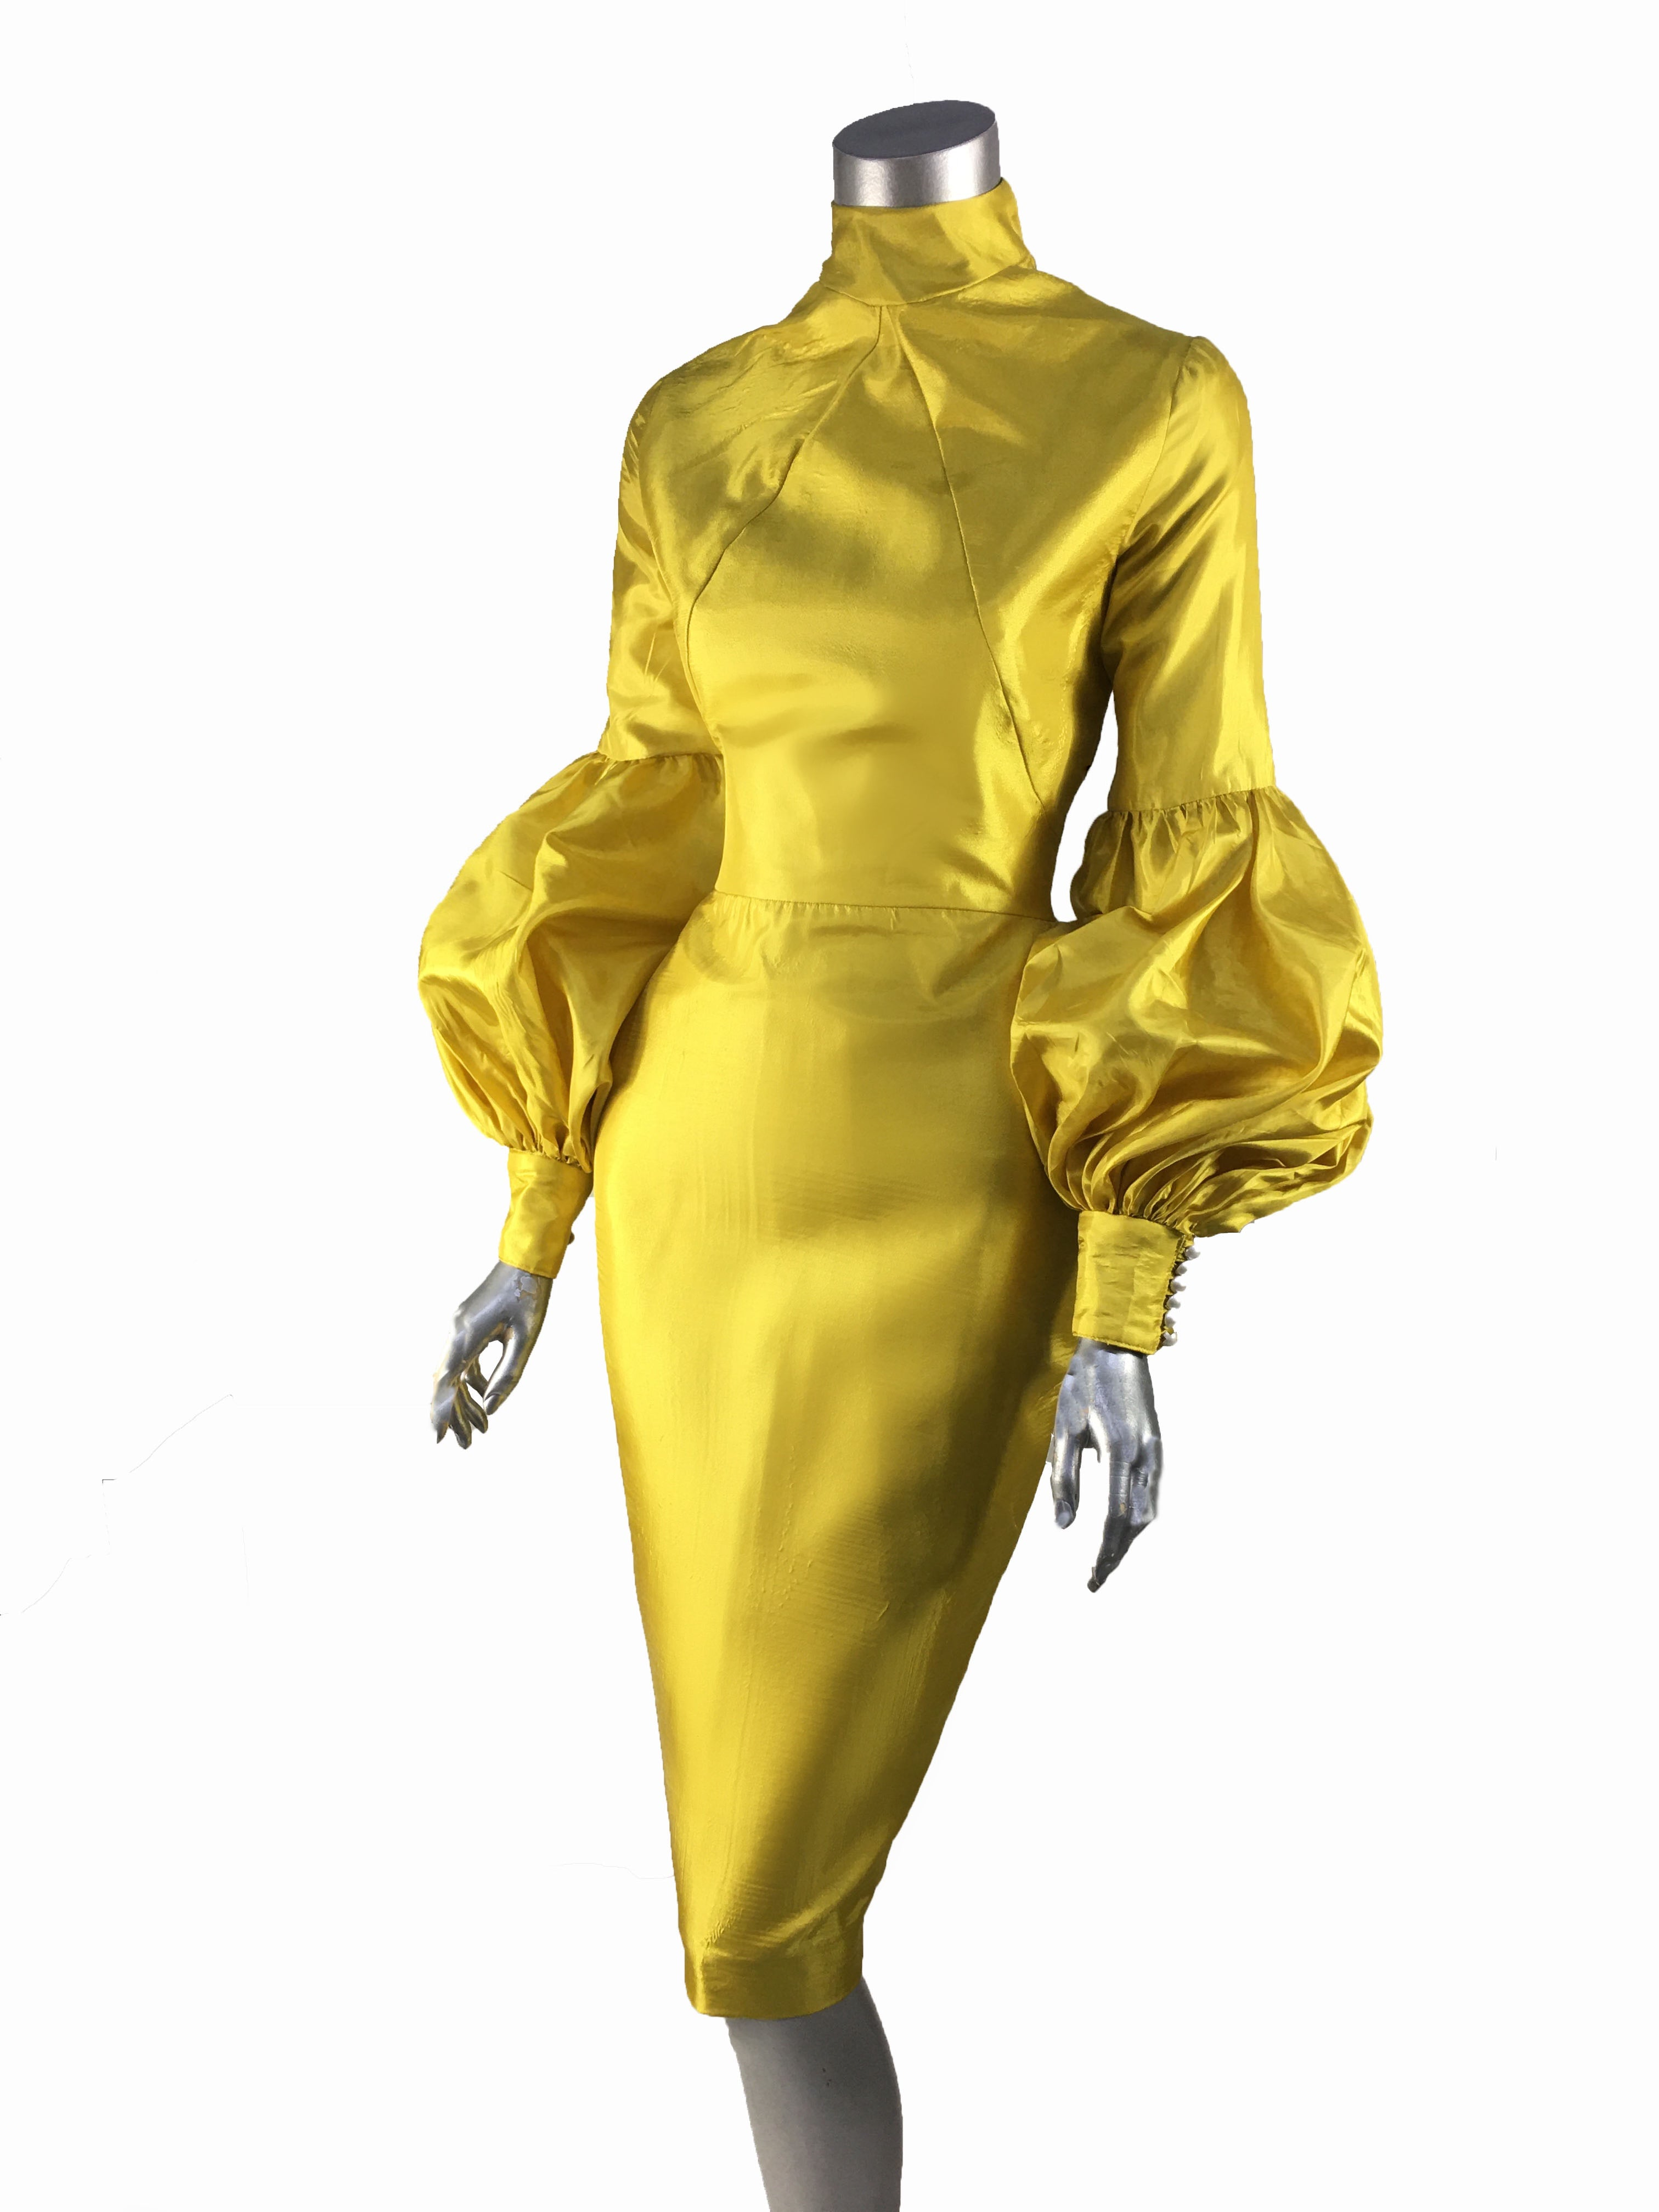 Keneea Linton Popcorn Pencil Dress with Balloon Sleeves